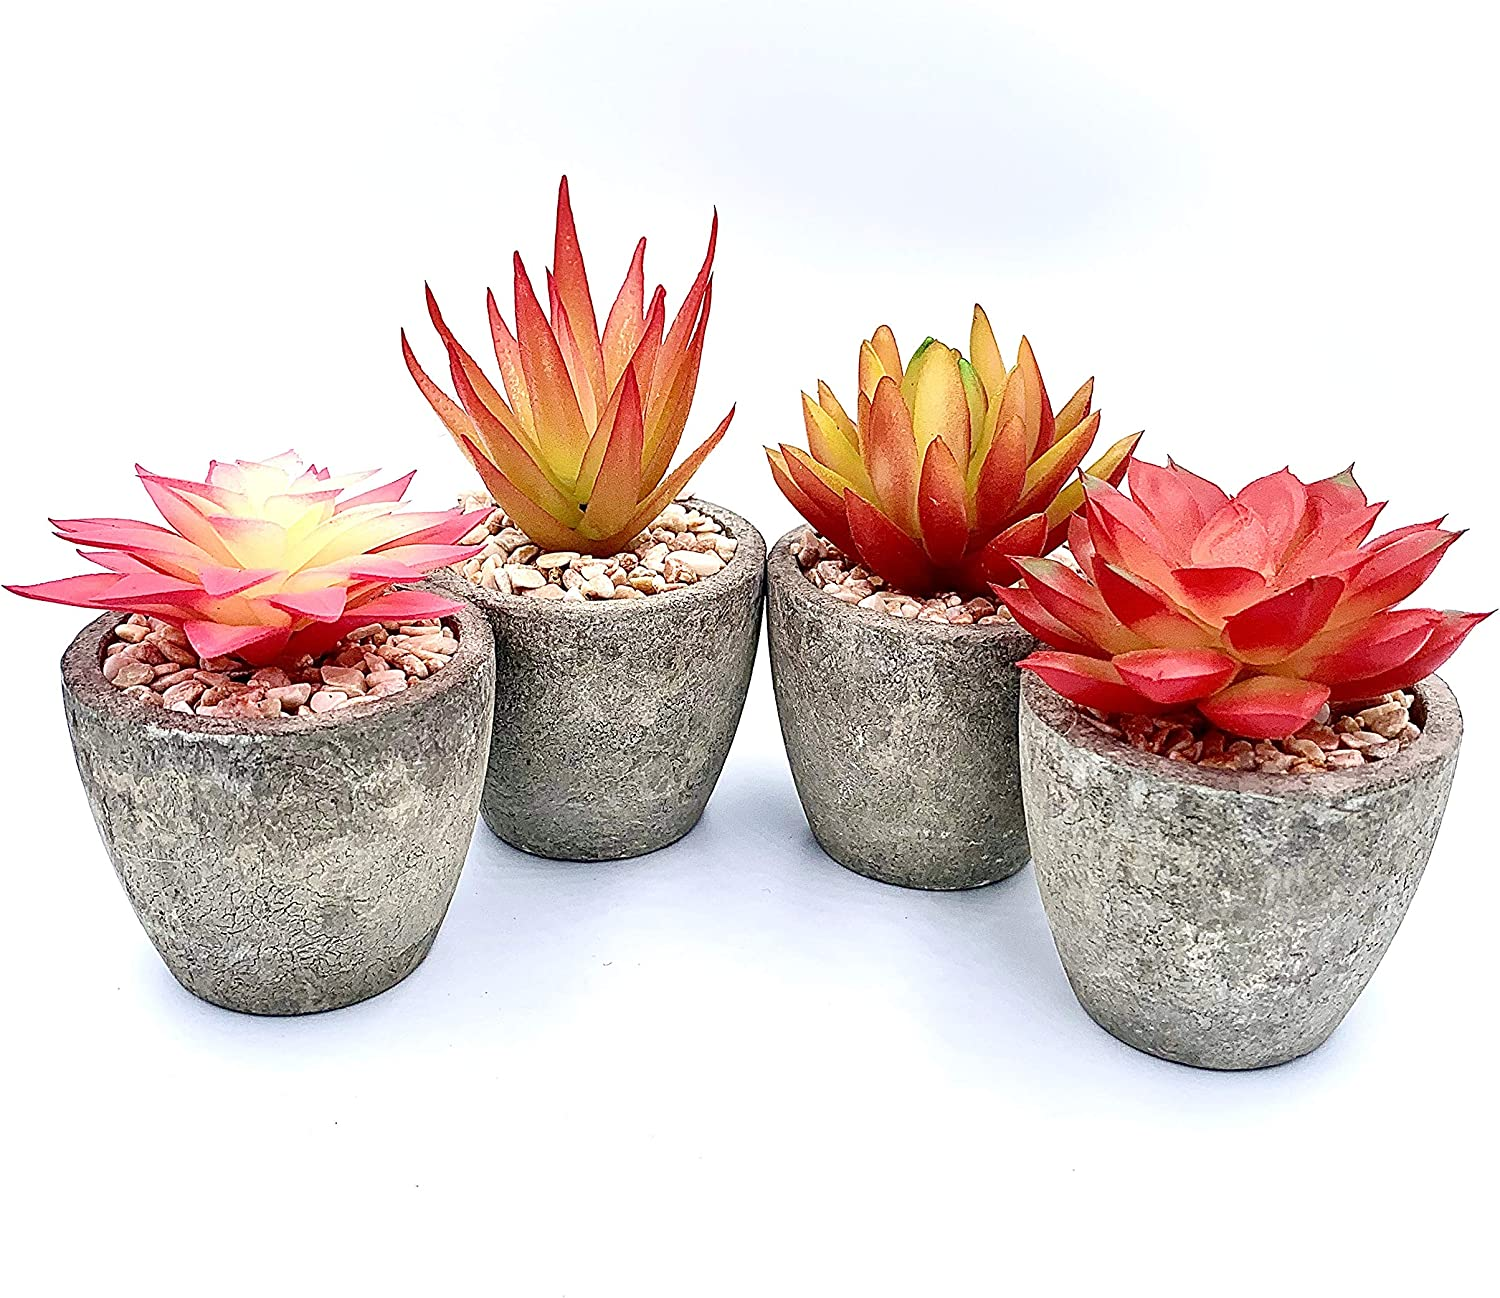 Artificial Succulent Plants by Lbee Home - Set of 4 | Tropical Colors, Faux Potted Mini Plants